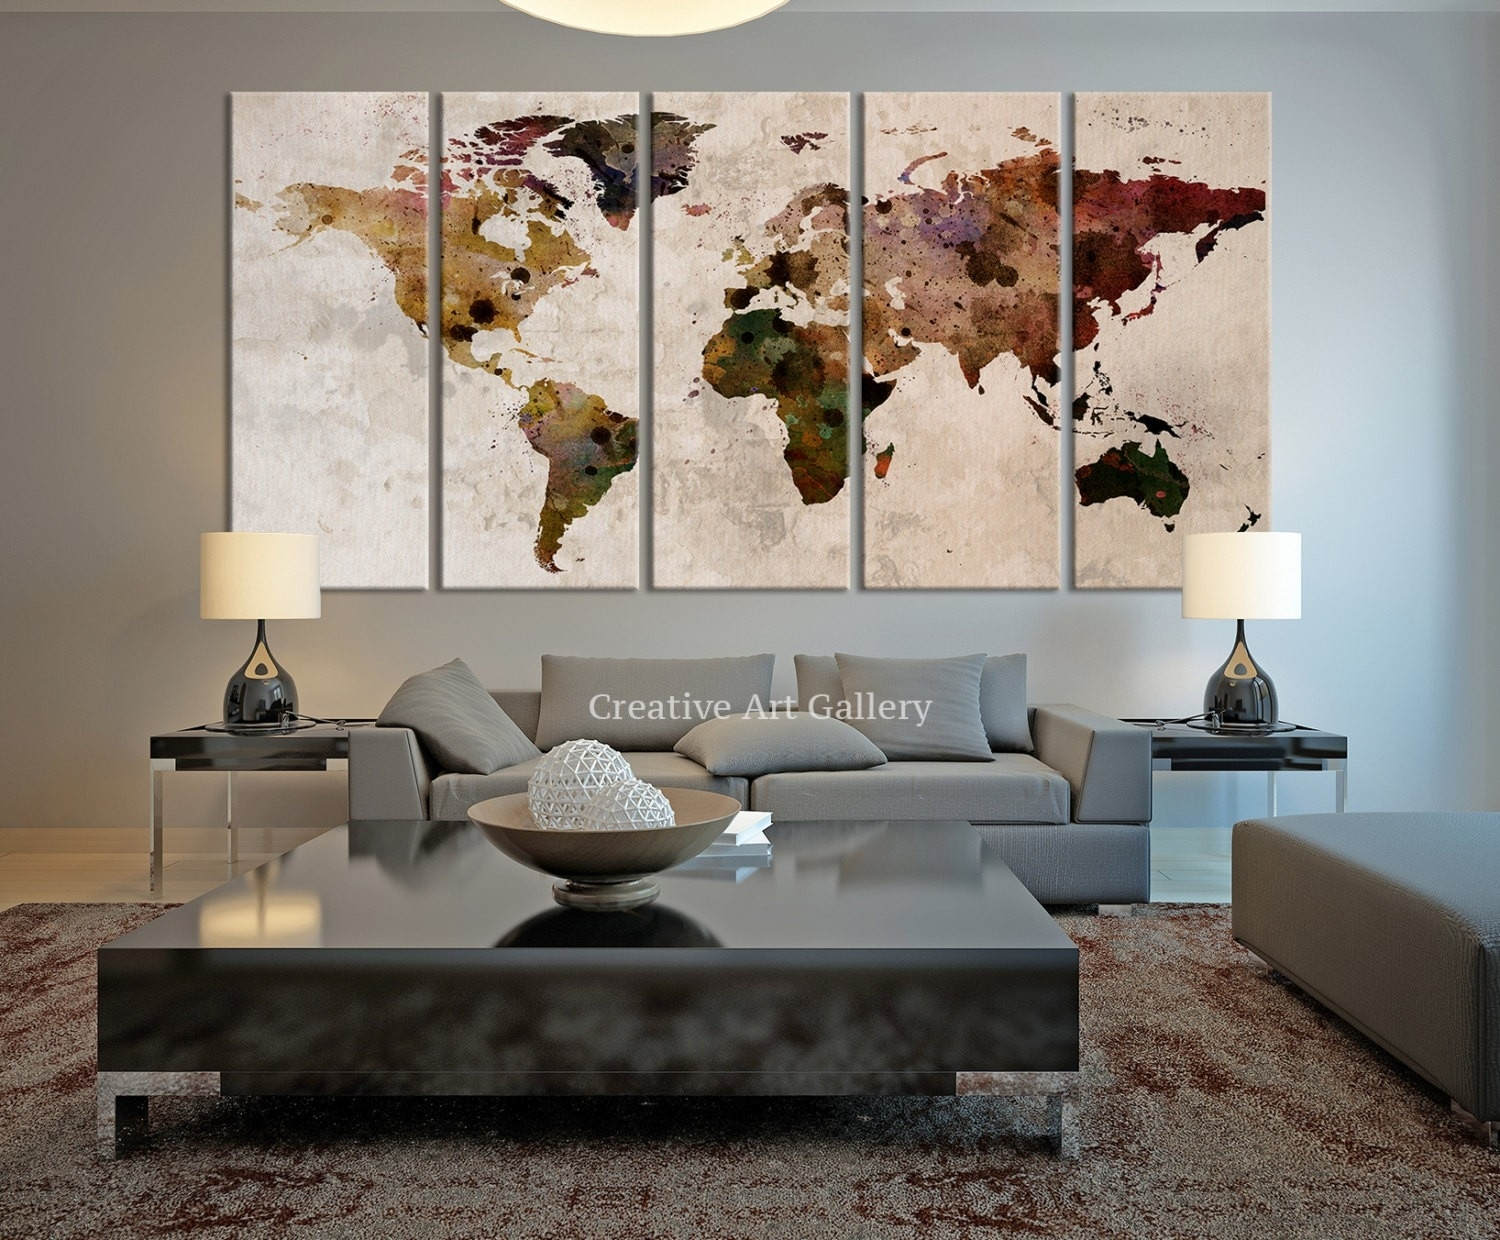 Antique World Map On Canvas Fresh 20 Rustic Wall Decor Ideas To Within Most Current Rustic Canvas Wall Art (Gallery 2 of 15)